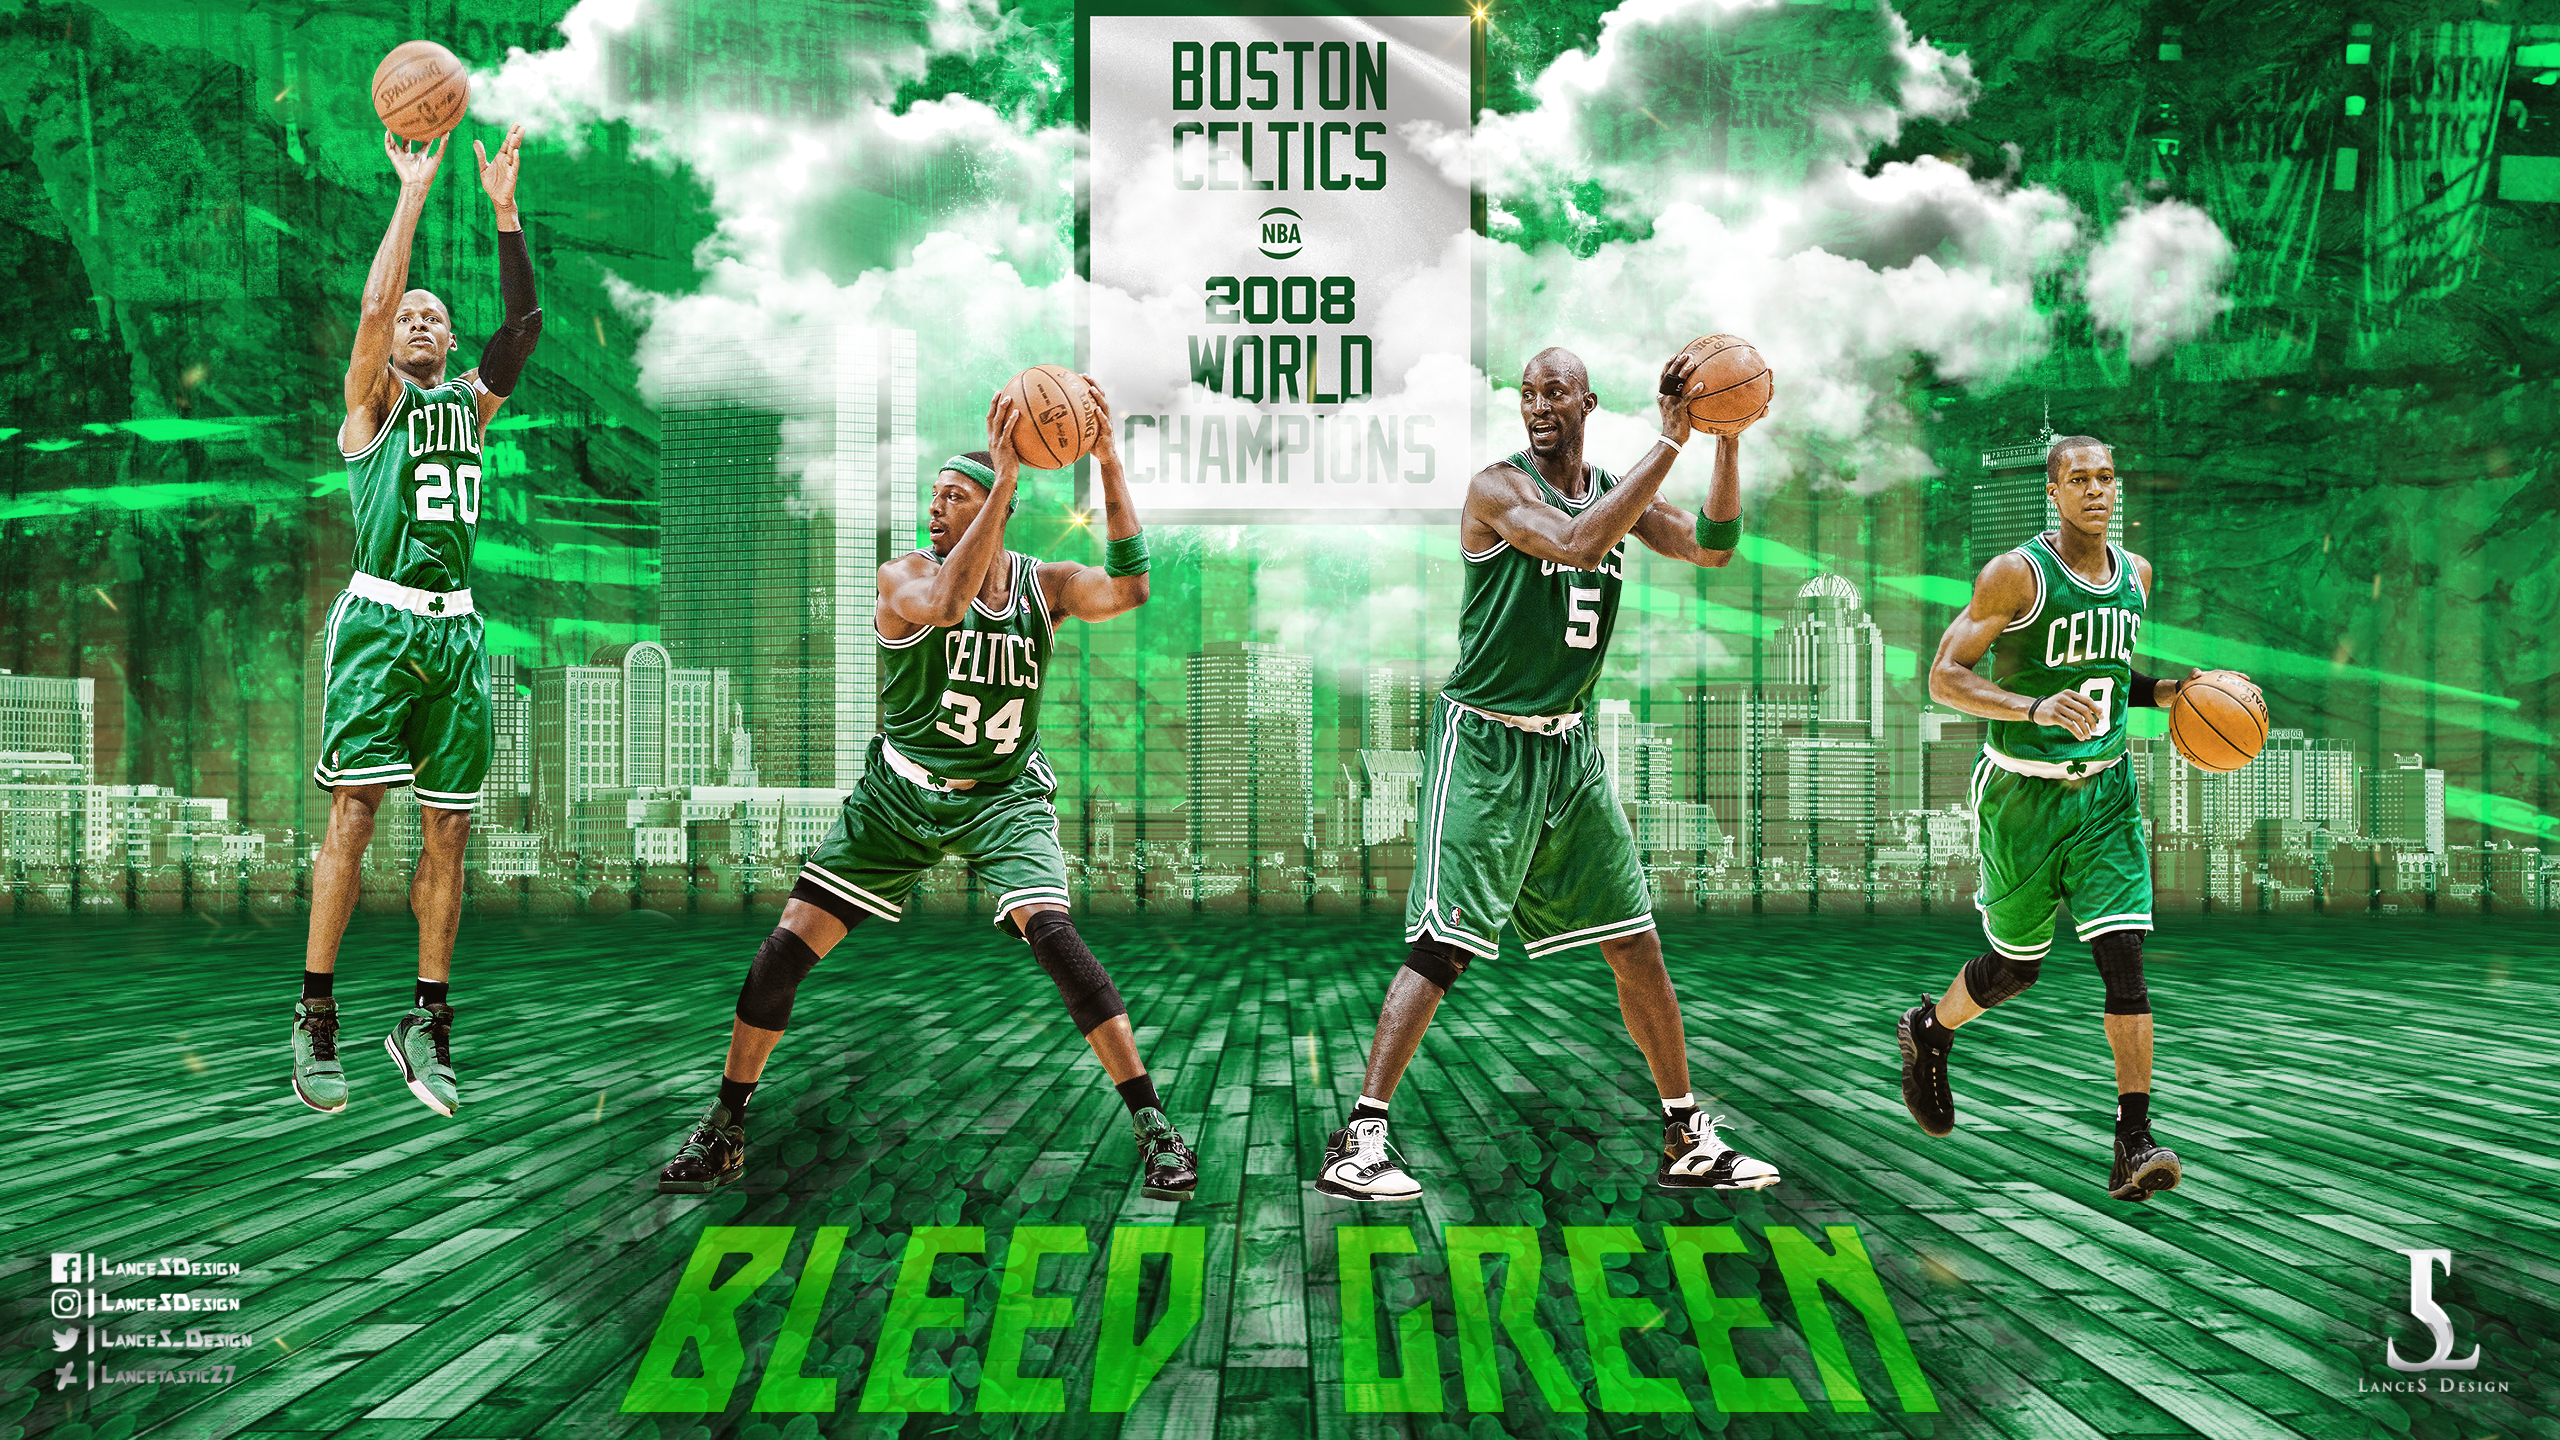 Boston Celtics Big 4 Wallpaper By Lancetastic27 On Deviantart